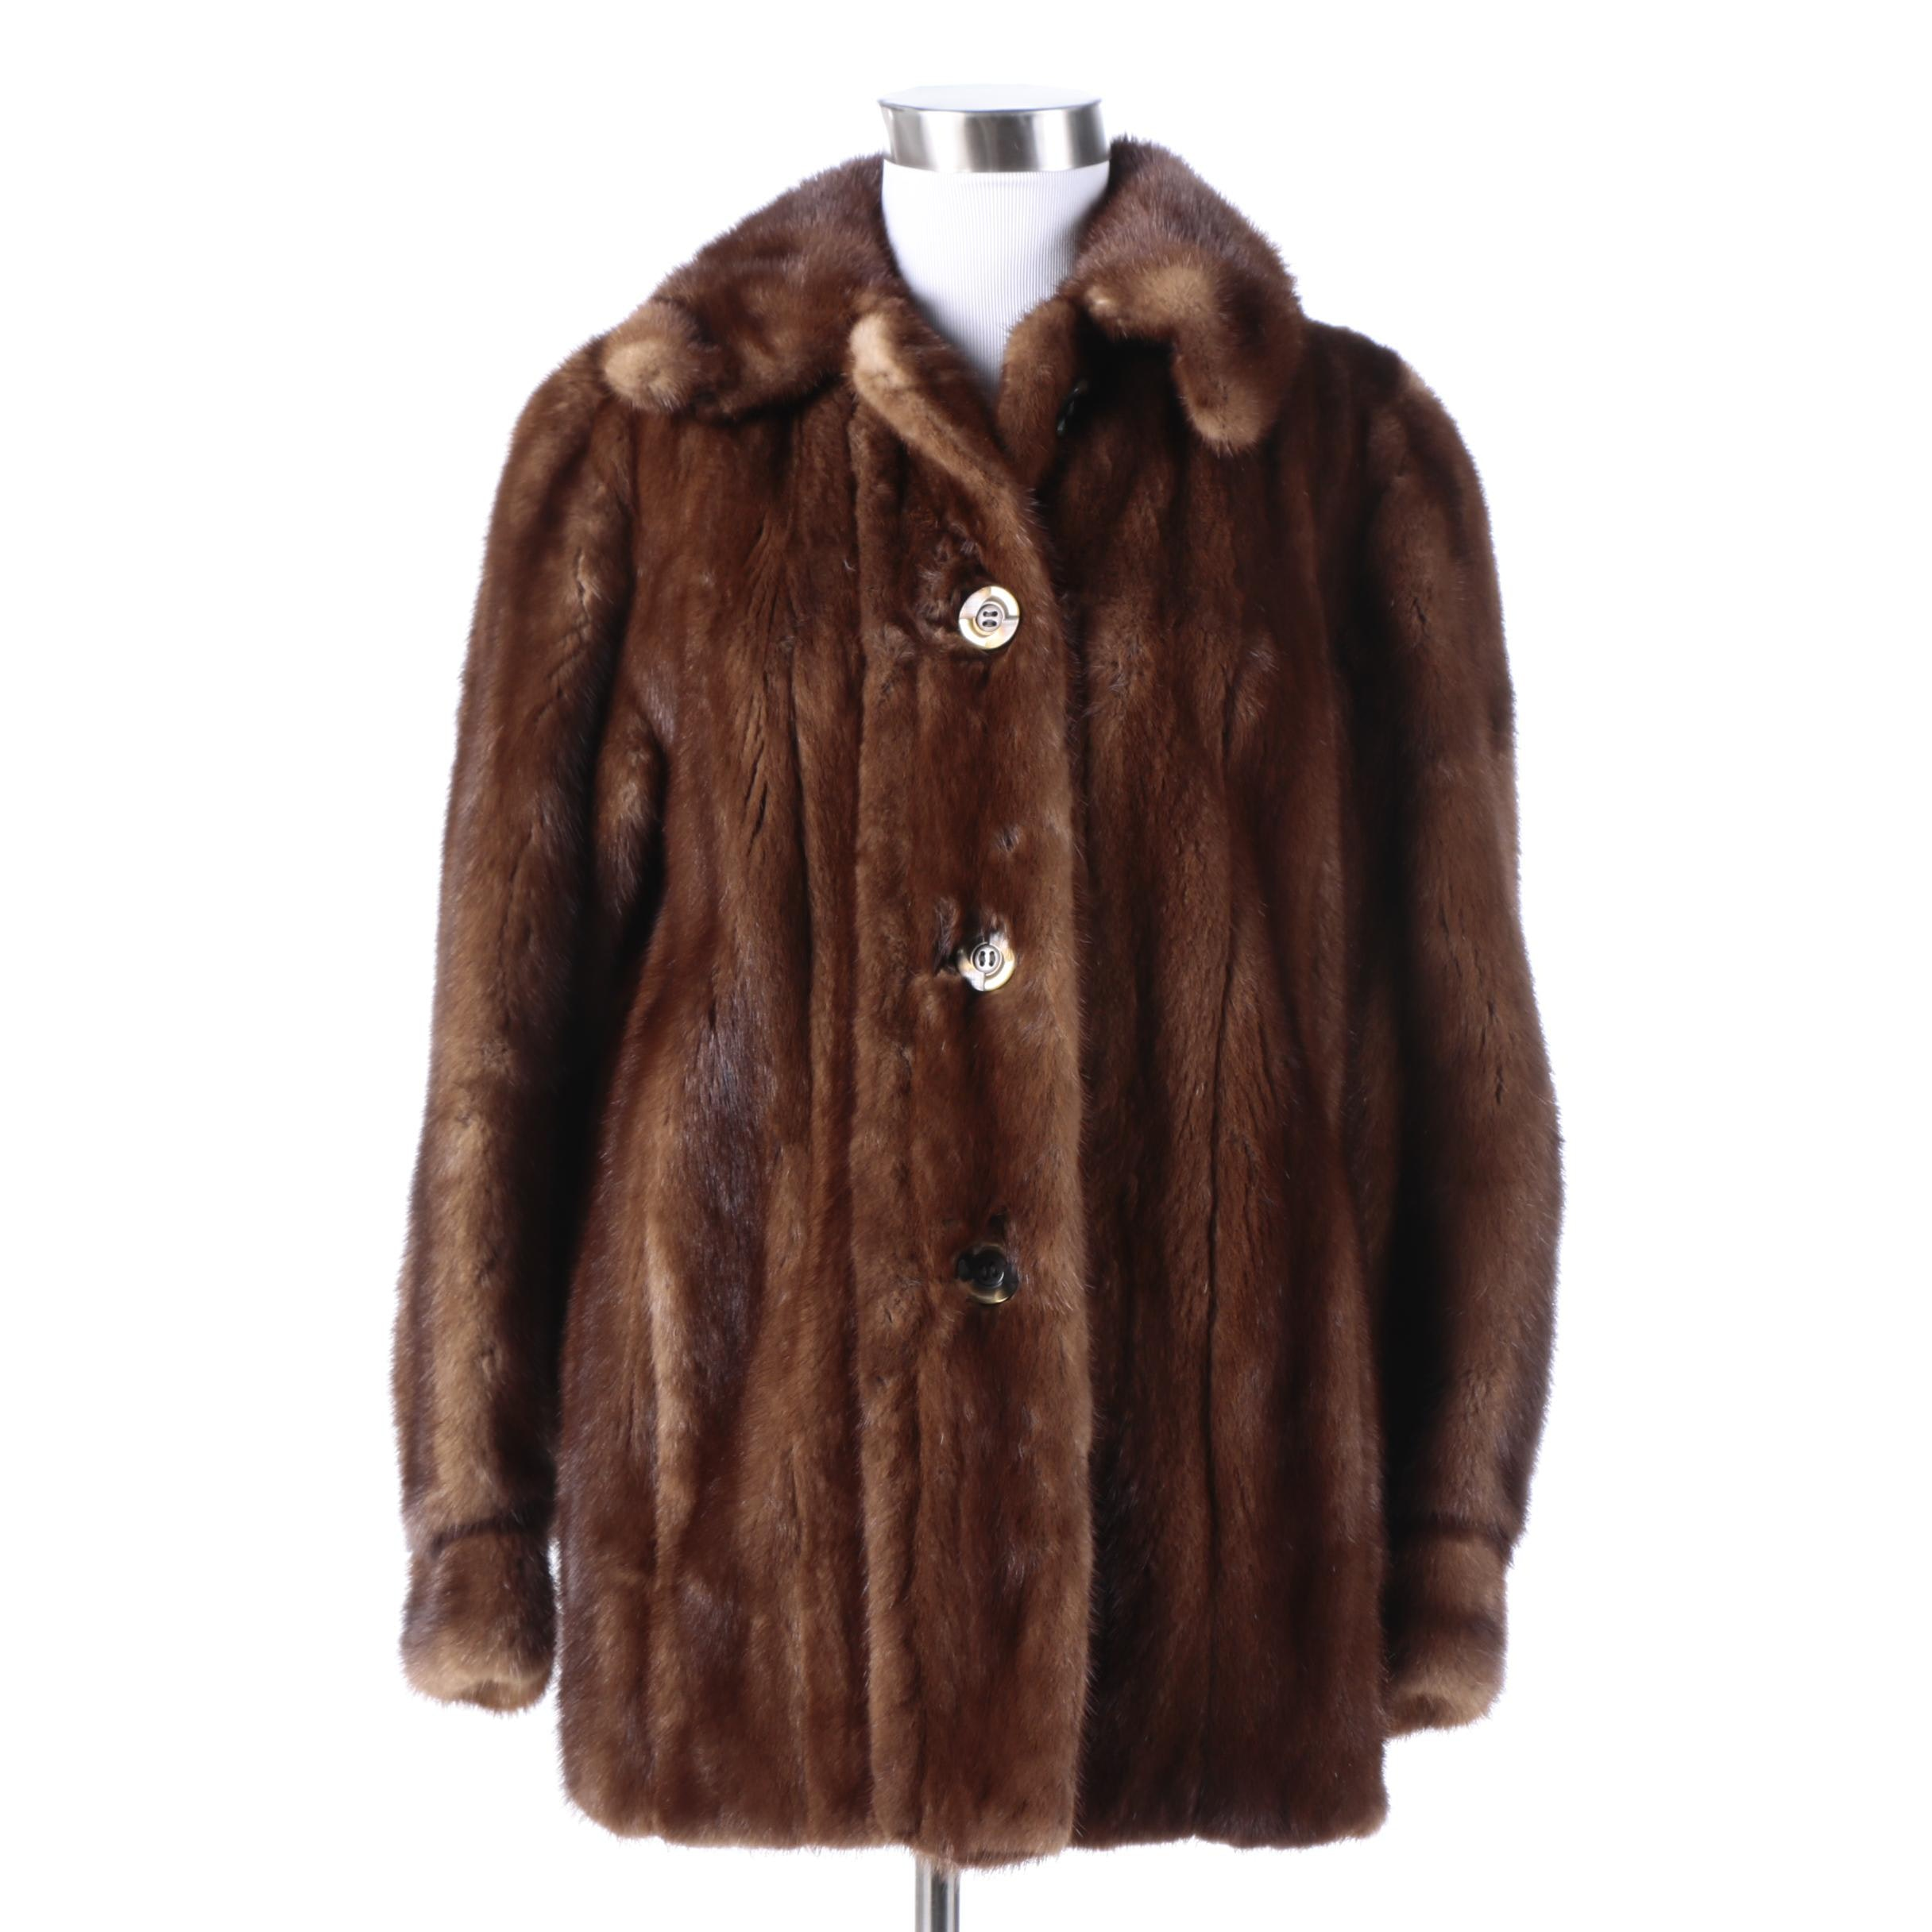 Vintage EMBA Lunaraine Natural Dark Brown Mink Fur Coat